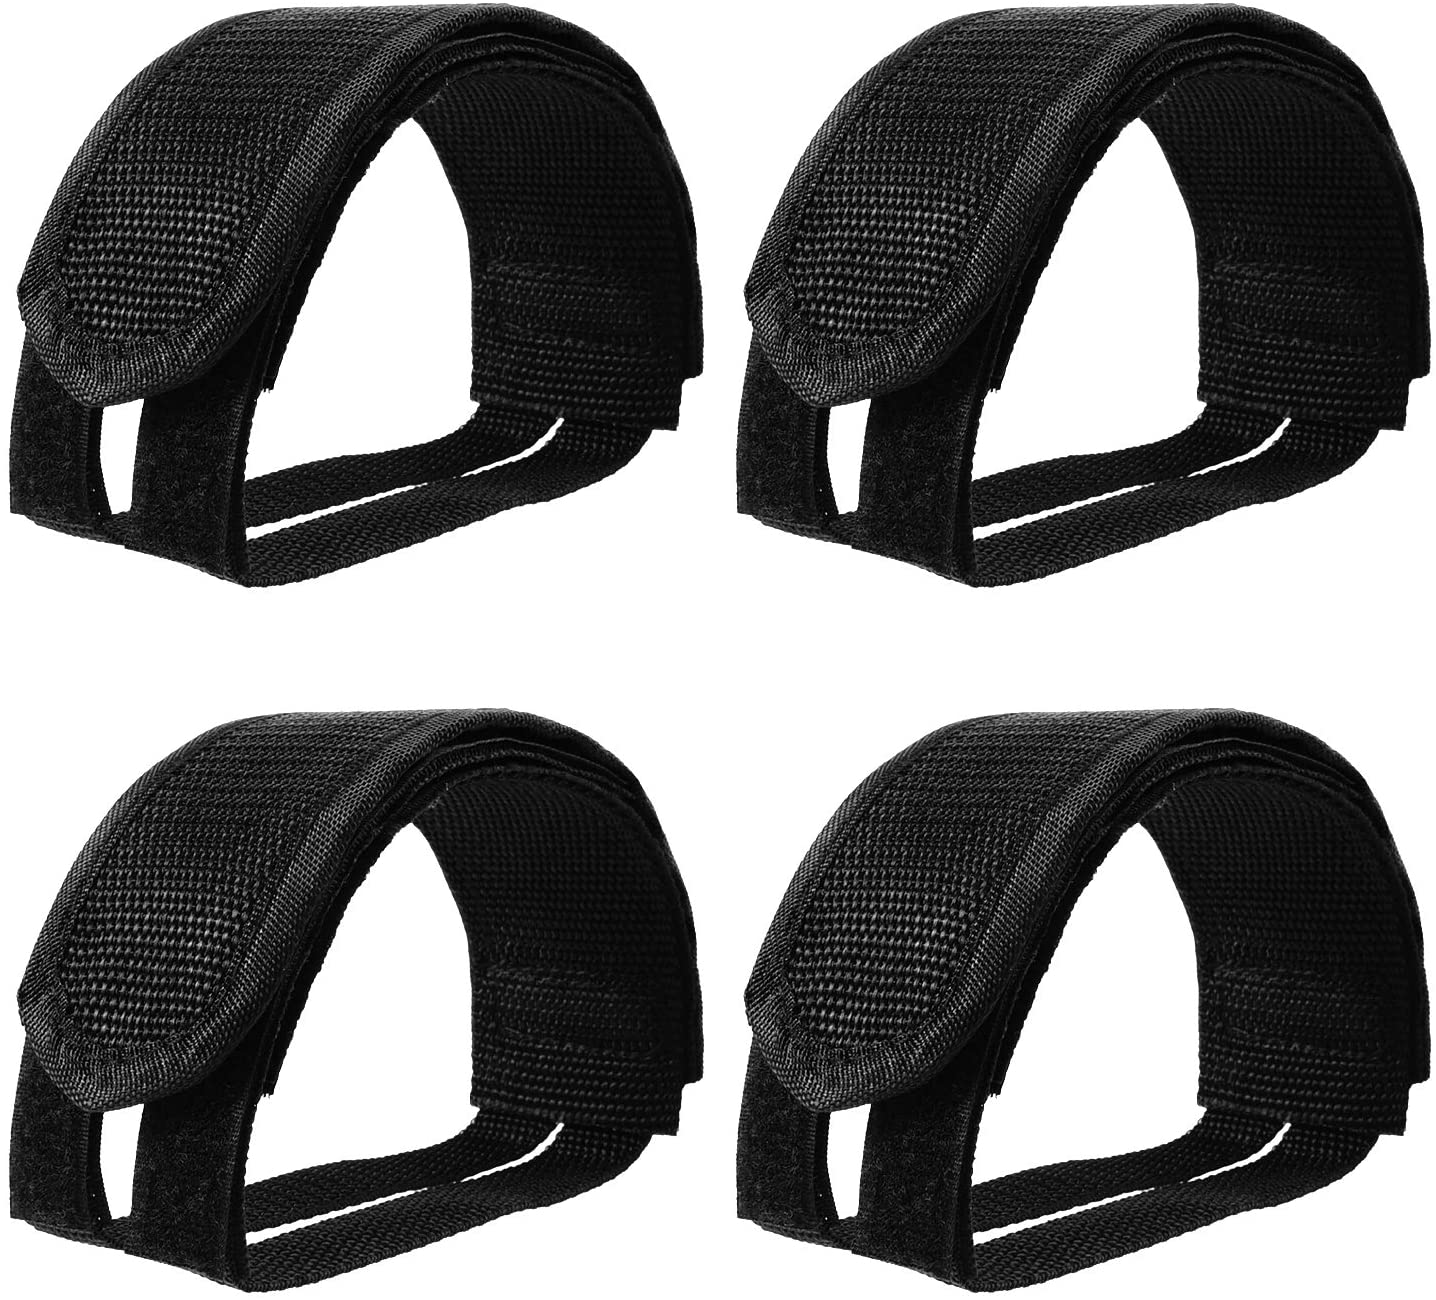 US Bicycle Bike Pedal Bands Feet Clip Road Binding Fixed Strap Double-Sided Tape